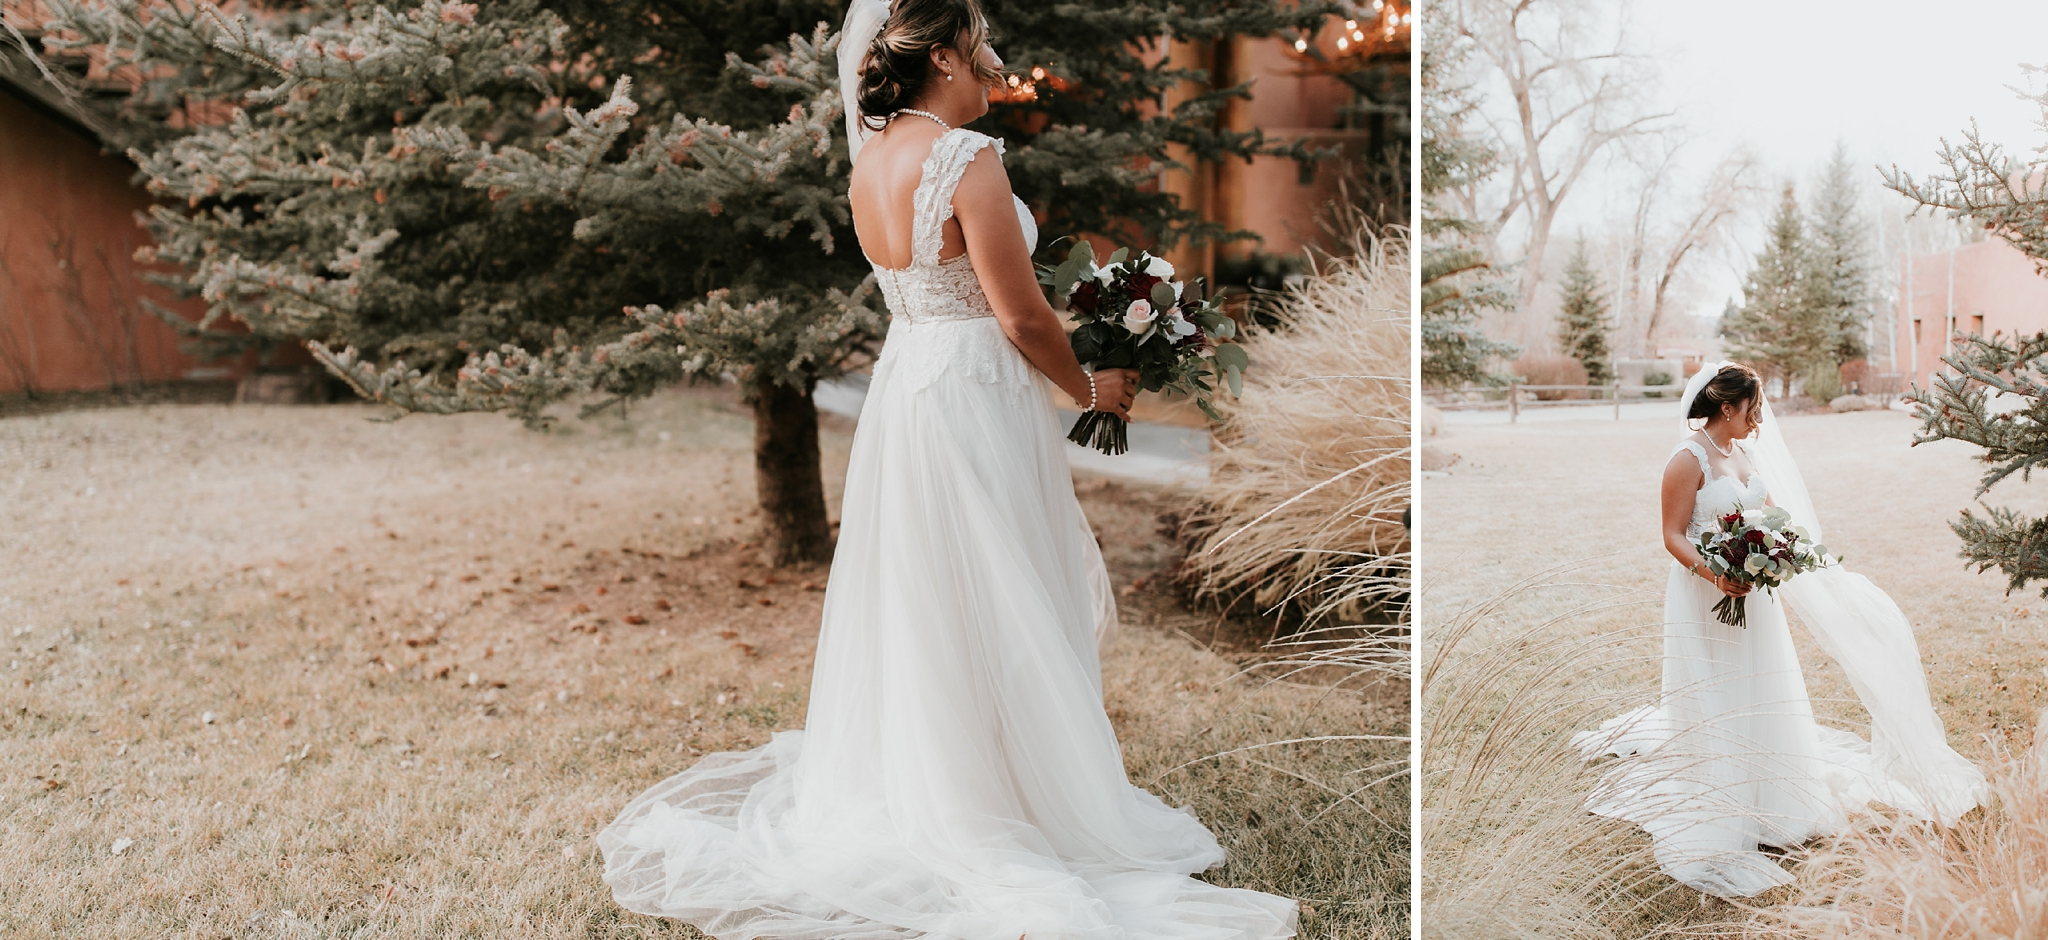 Alicia+lucia+photography+-+albuquerque+wedding+photographer+-+santa+fe+wedding+photography+-+new+mexico+wedding+photographer+-+new+mexico+wedding+-+wedding+gowns+-+bridal+gowns+-+a+line+wedding+gown_0040.jpg